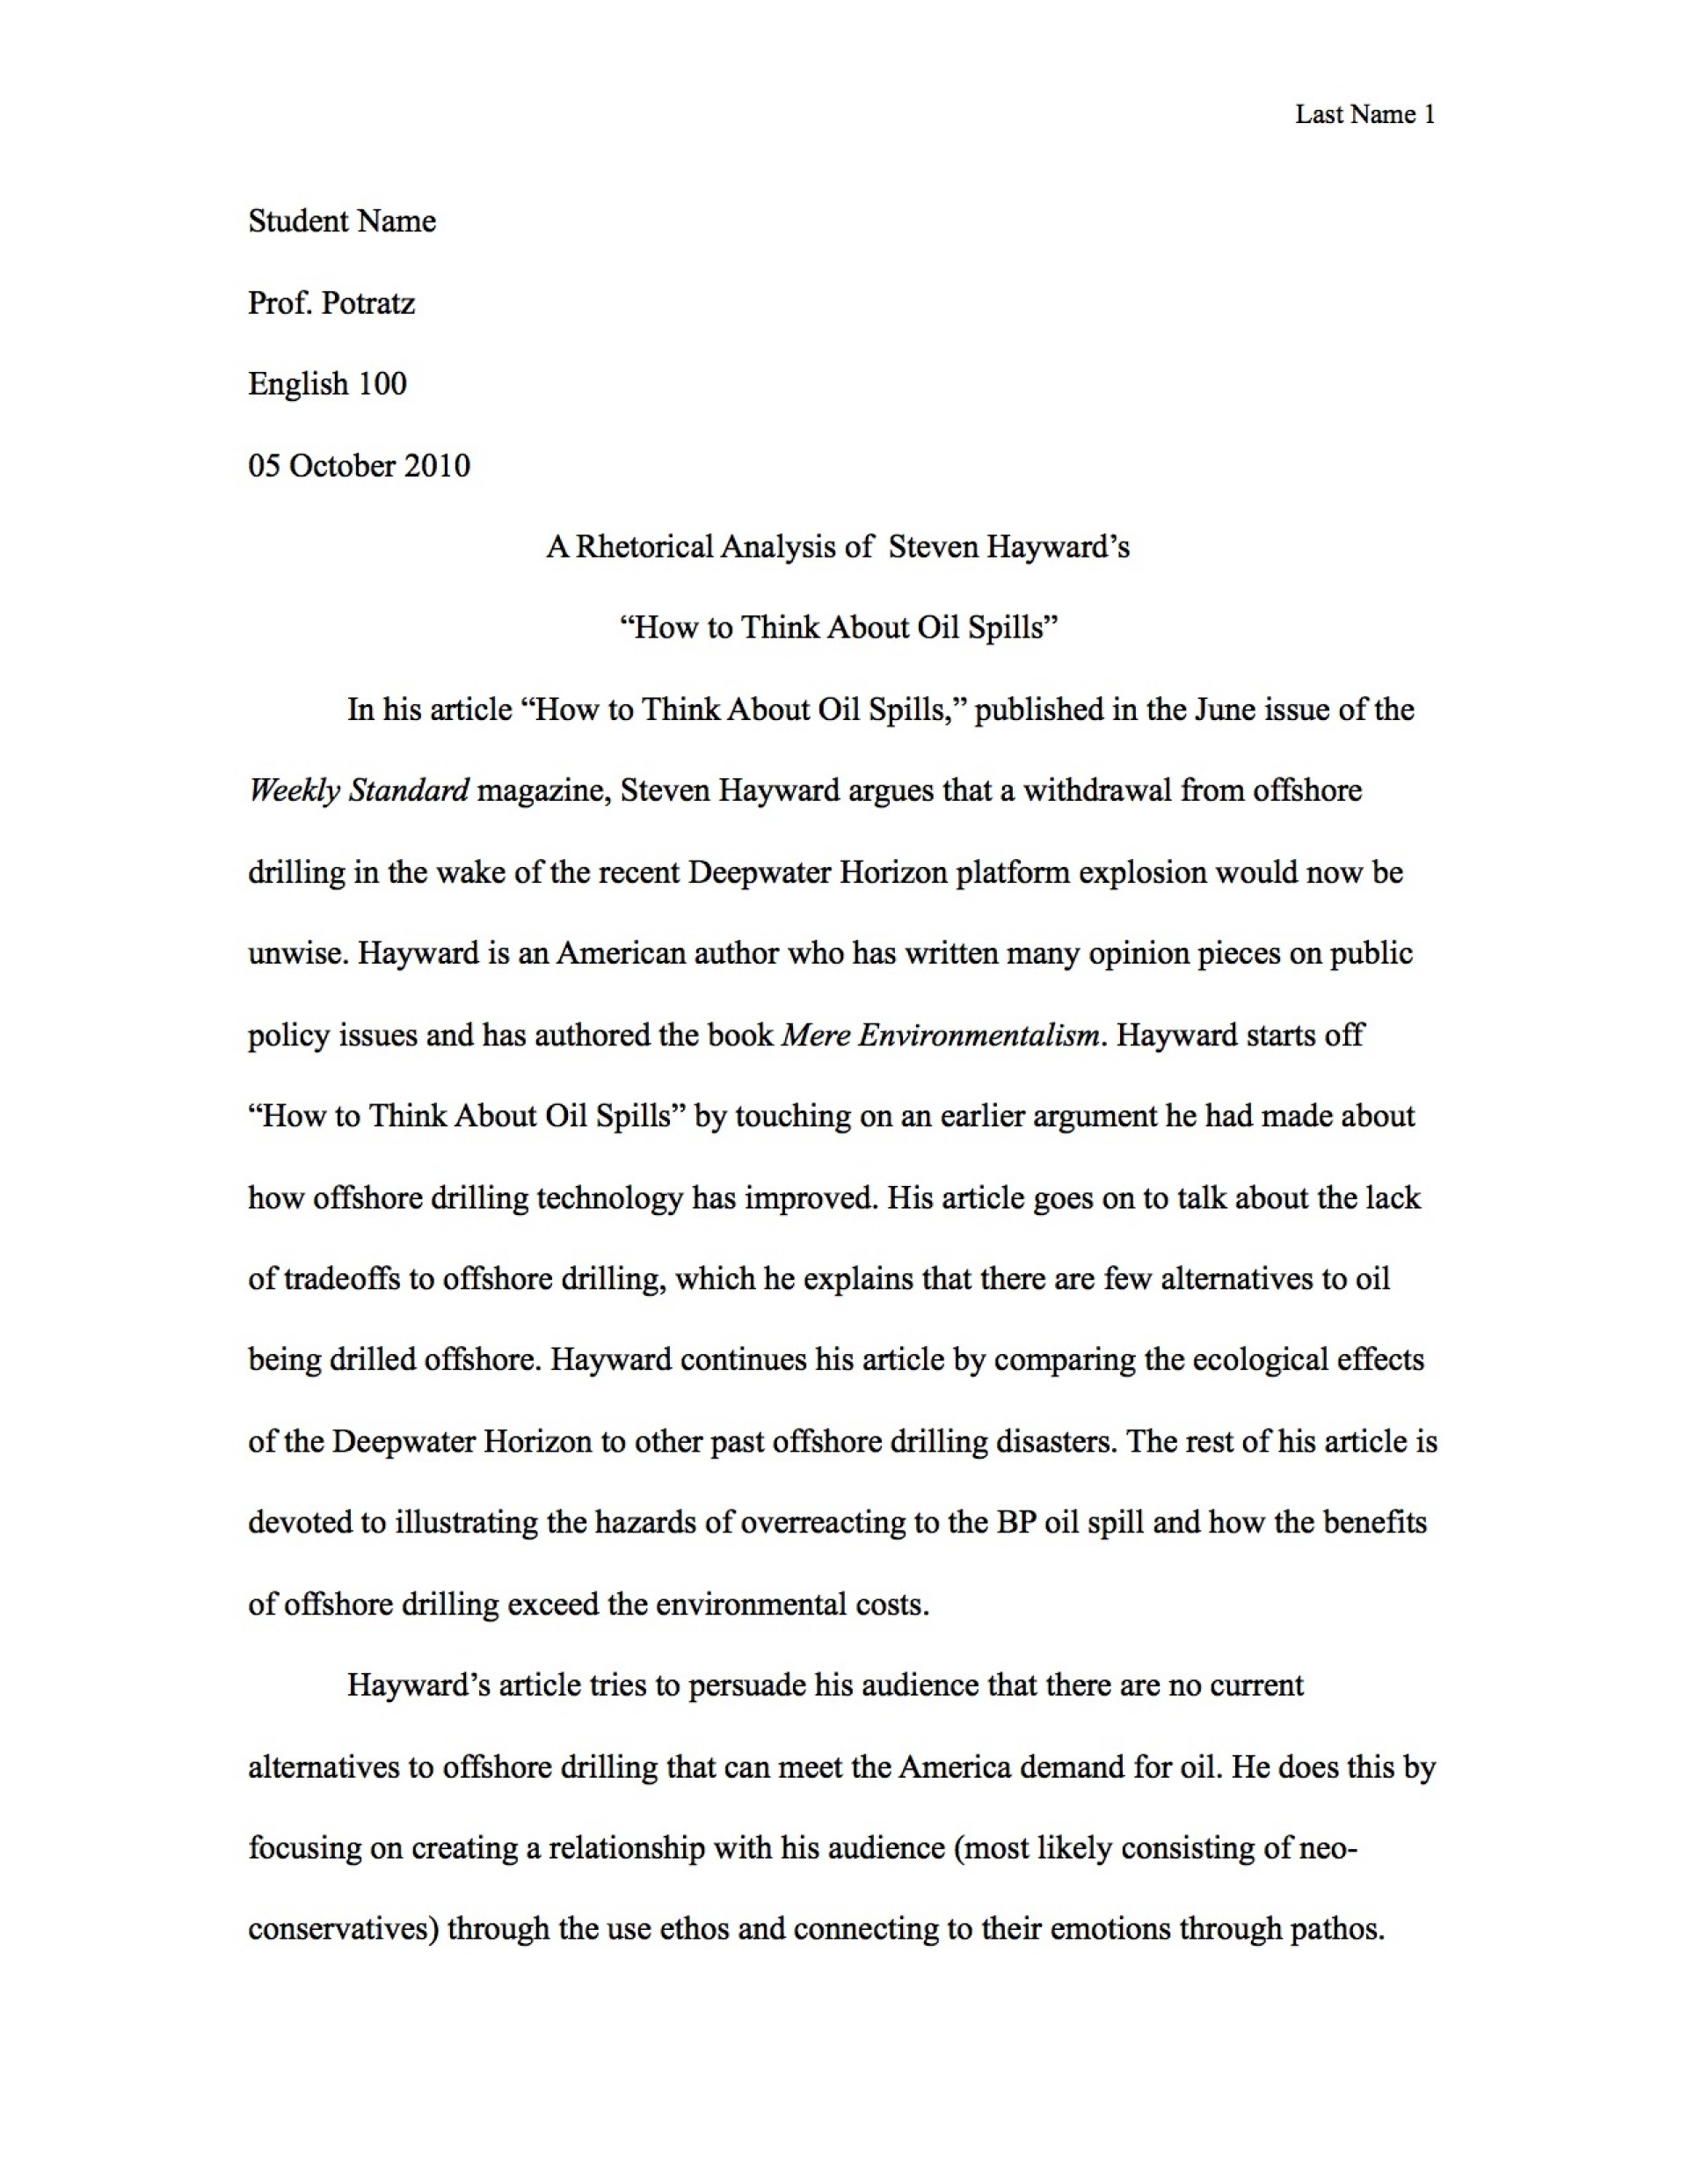 002 Rhetoric Essay Examples Of Rhetorical Analysis Essays Goal Blockety Co Example Song S Speech Movie